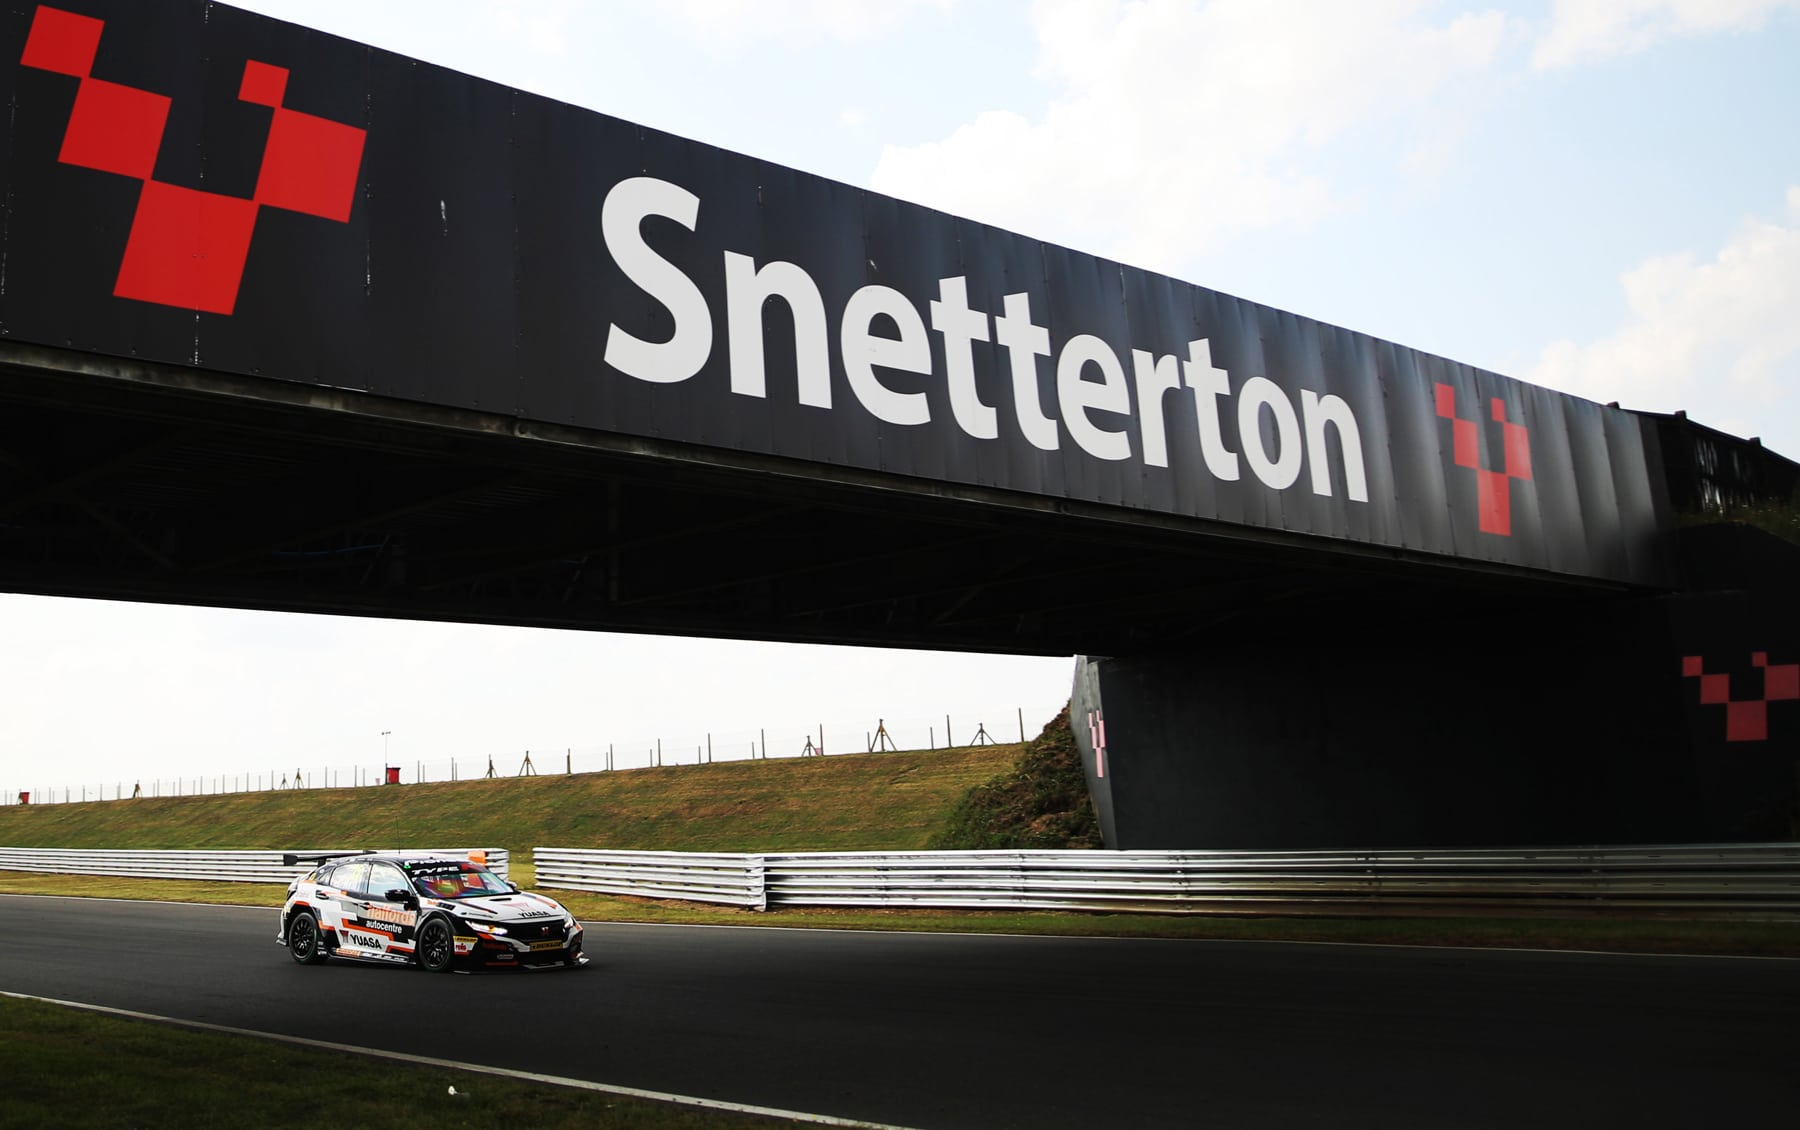 Snetterton Racetrack in Norfolk